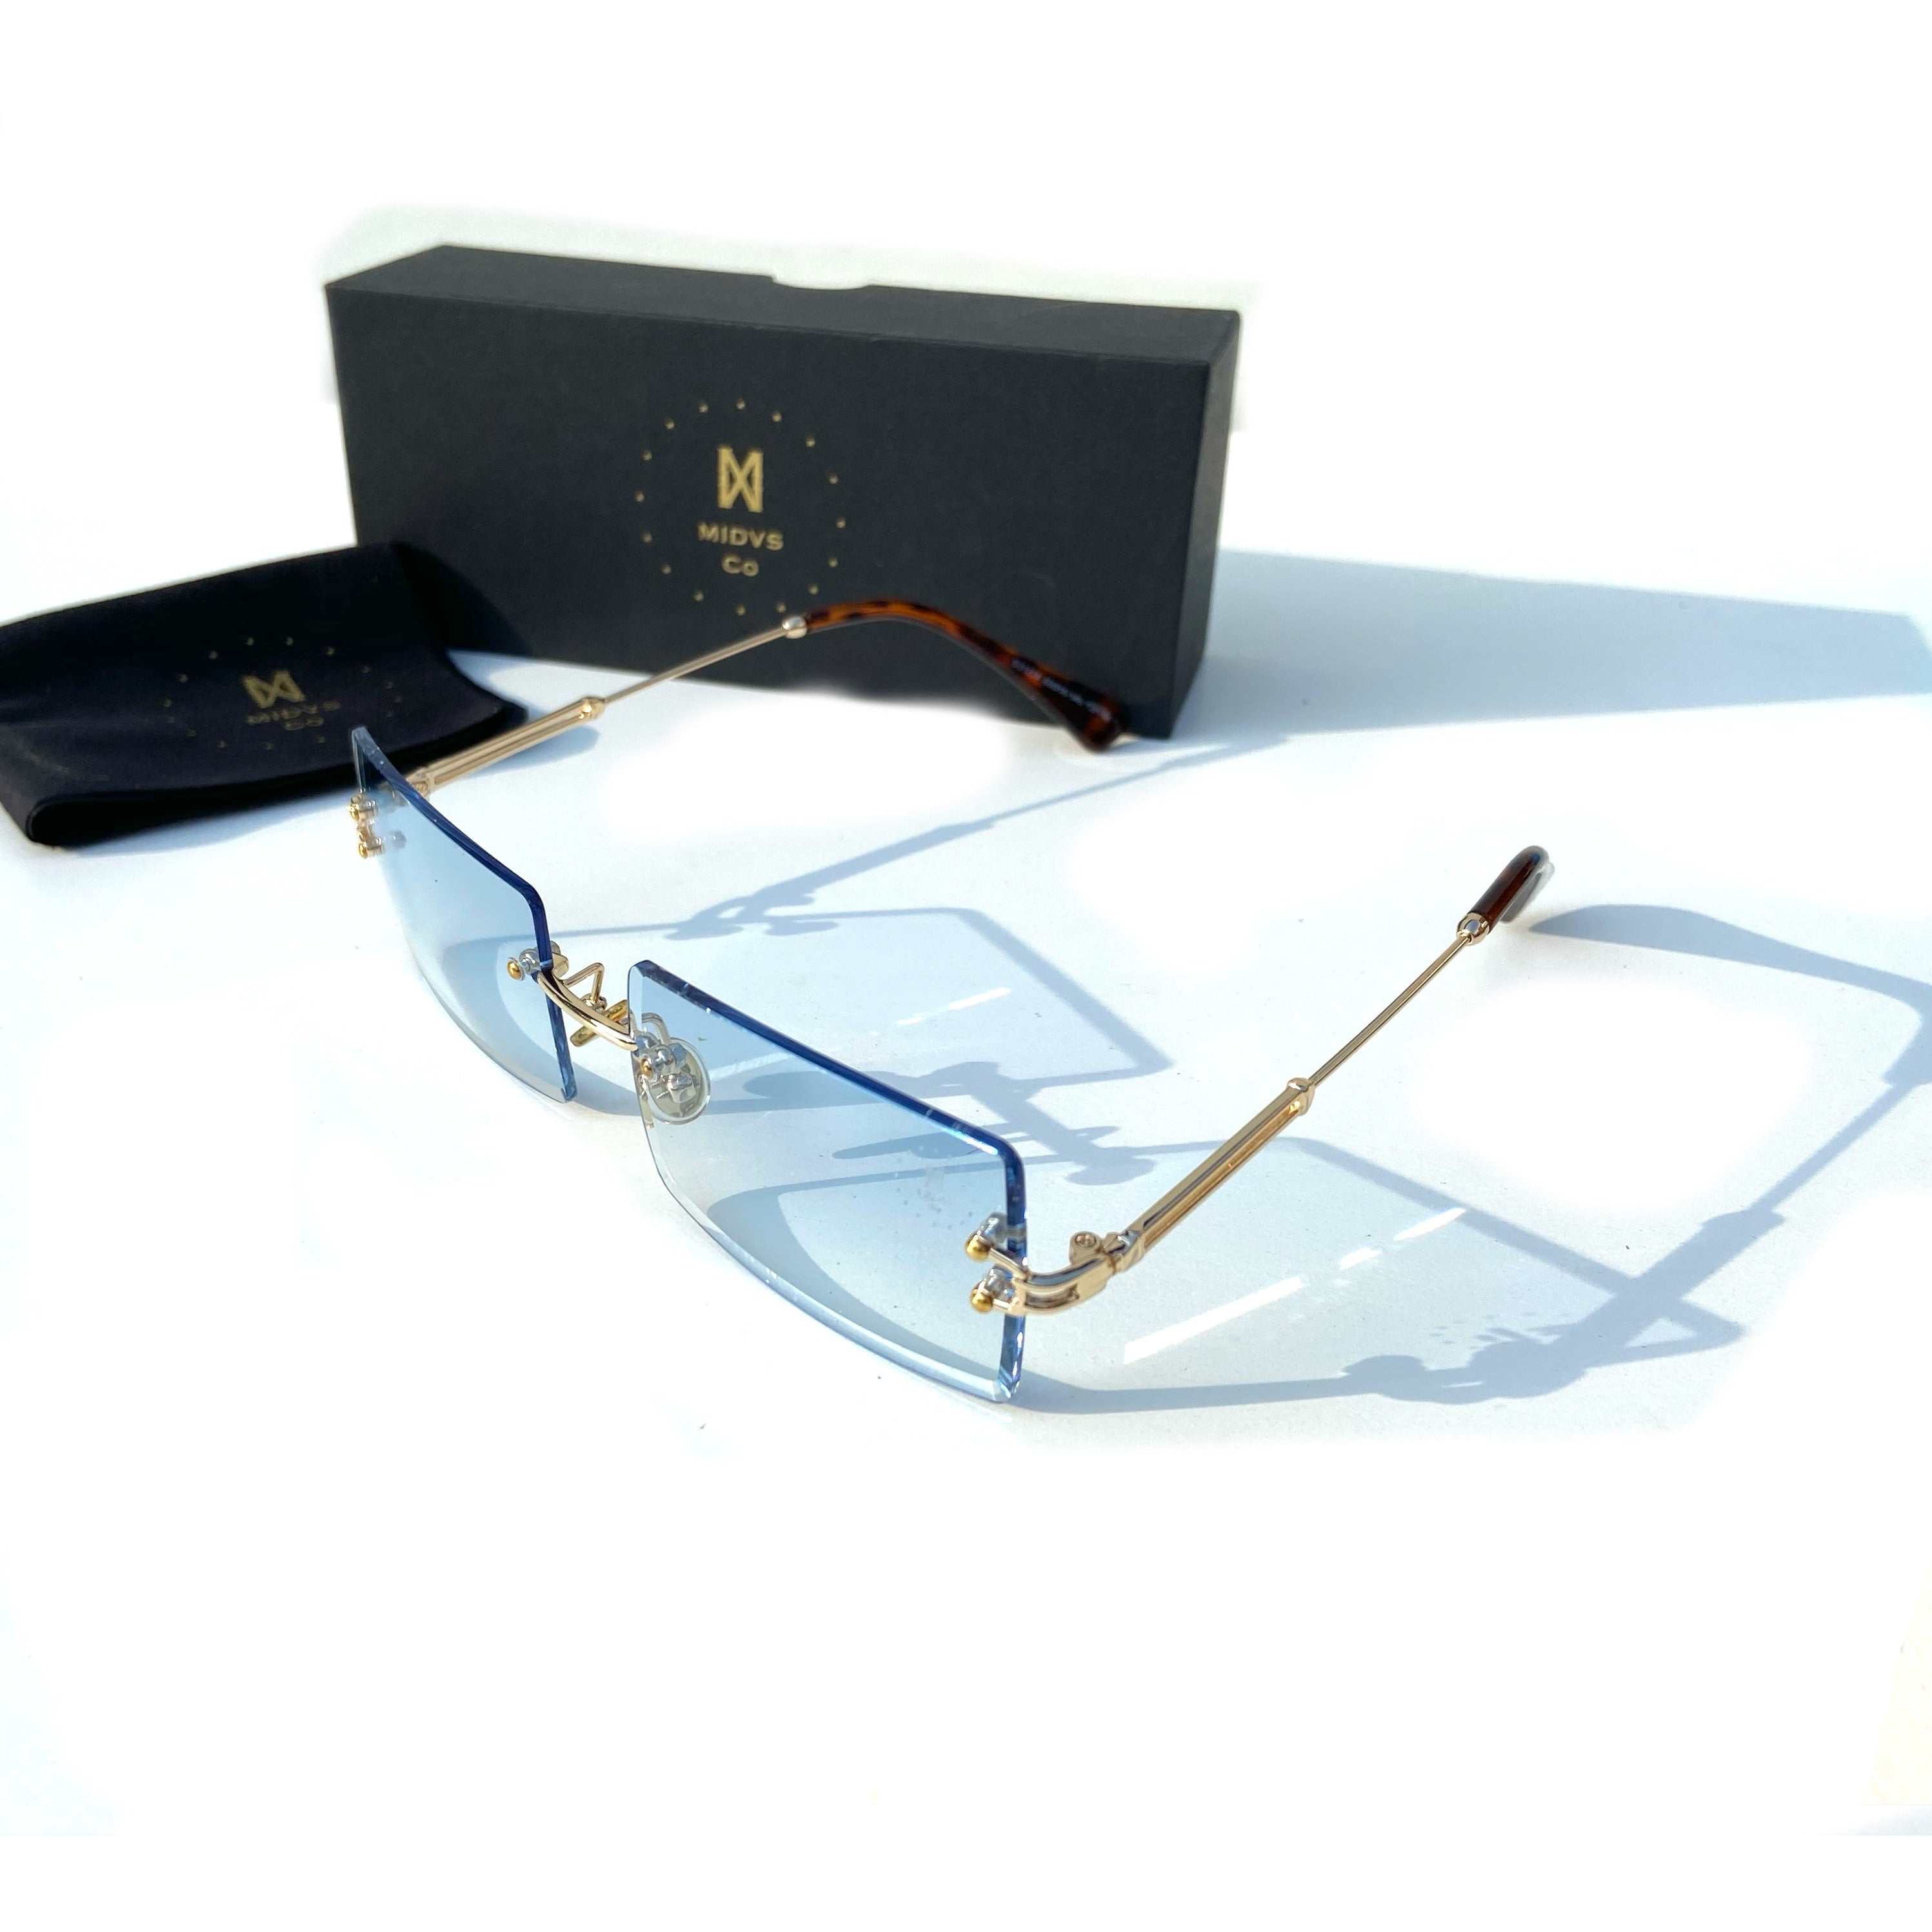 Midas co Capone Shades Blue tint / Gold